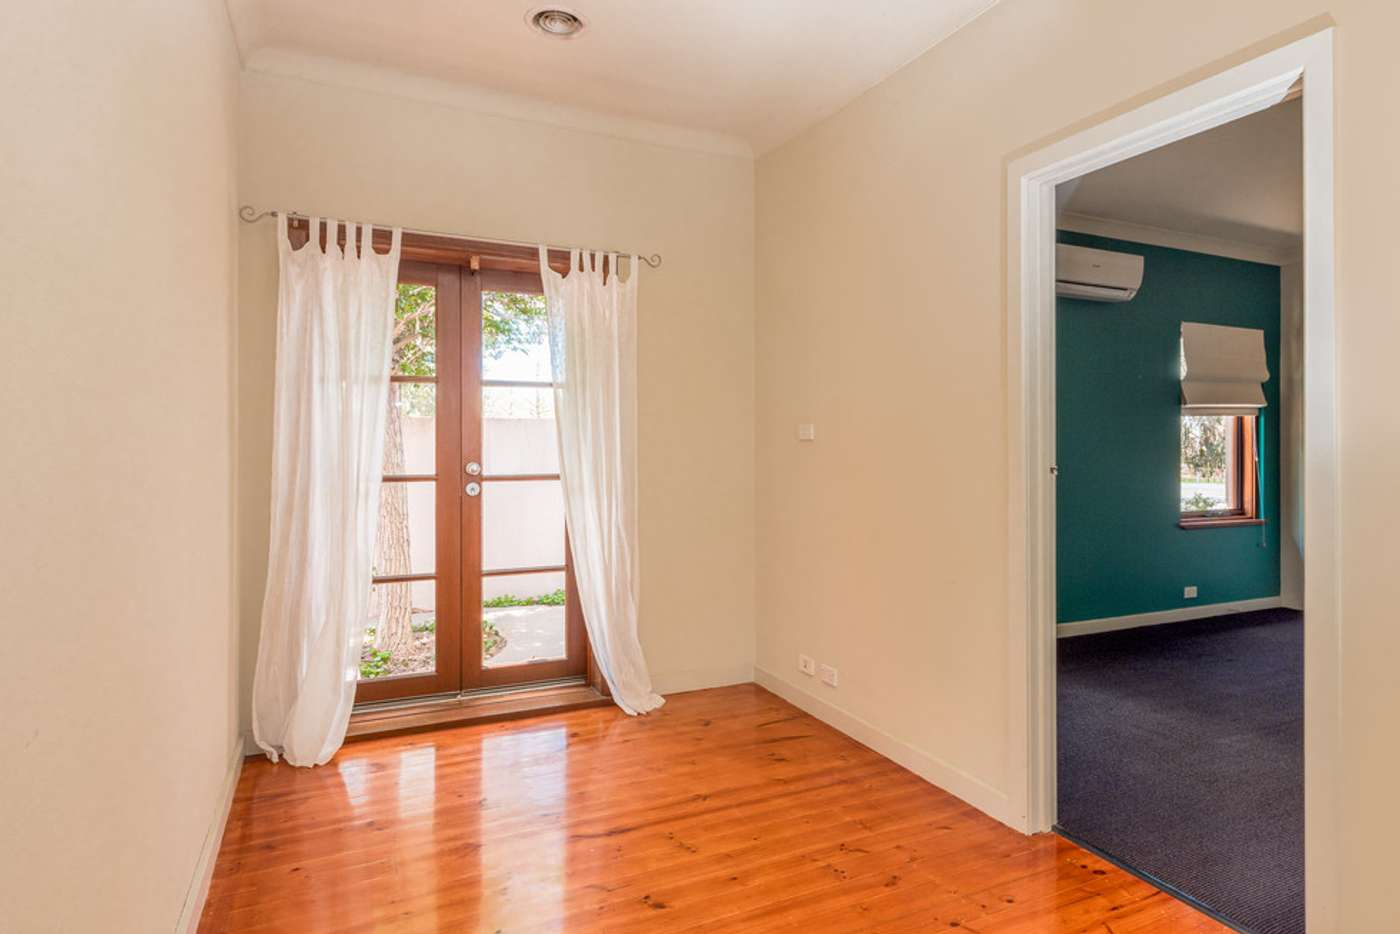 Seventh view of Homely house listing, 30 McMillan Crescent, Narrabundah ACT 2604